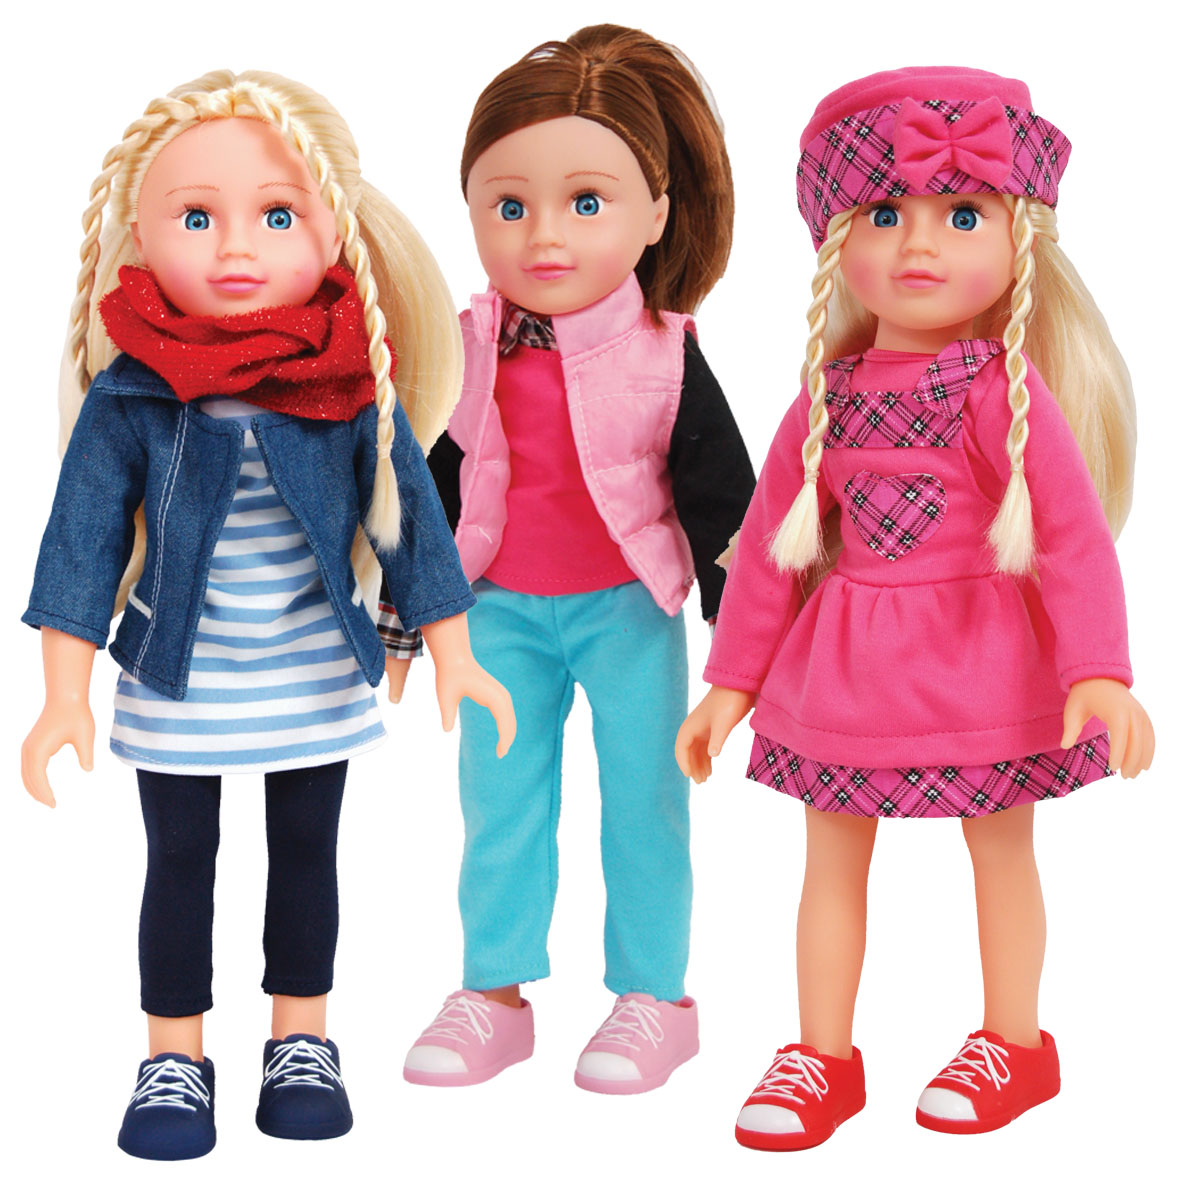 Girl Friend's Fashion Doll	40cm (16inch) Hard Body Fashion Doll each in a Classic Outfit. 6 Assorted.